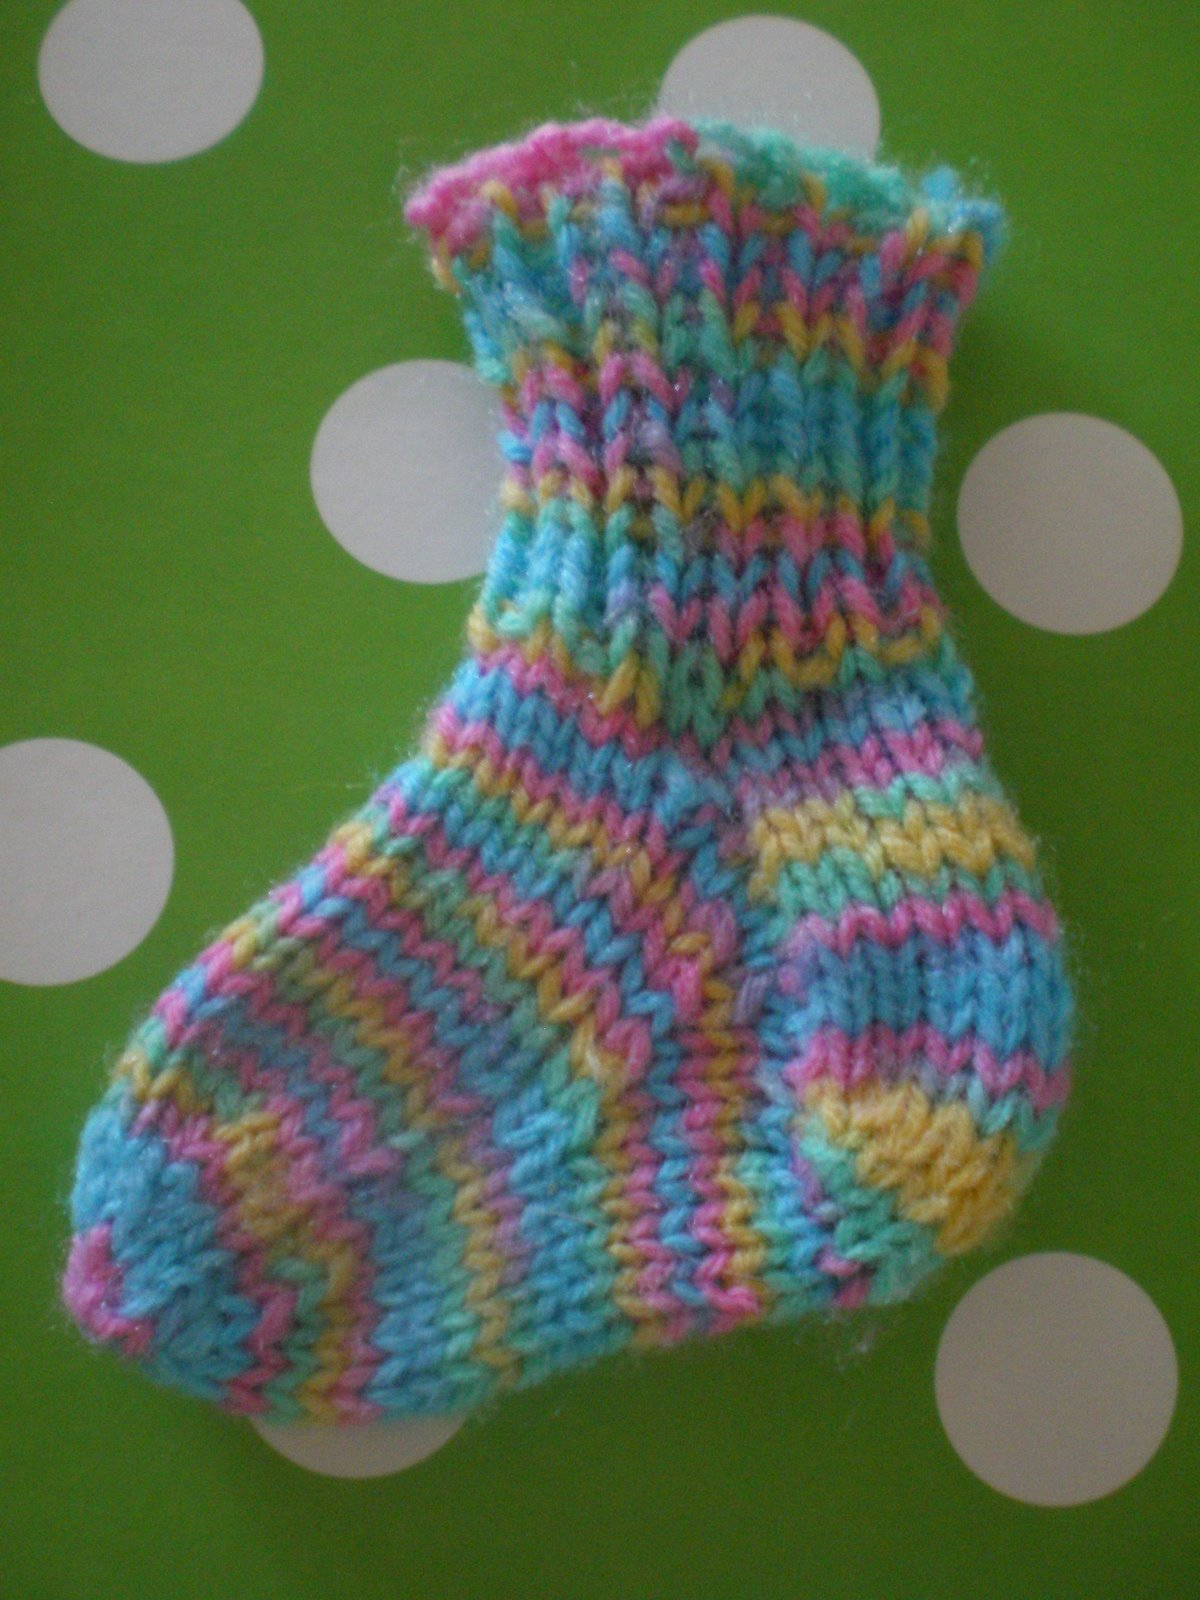 Newborn and Preemie Sock Pattern | One Ordinary Woman